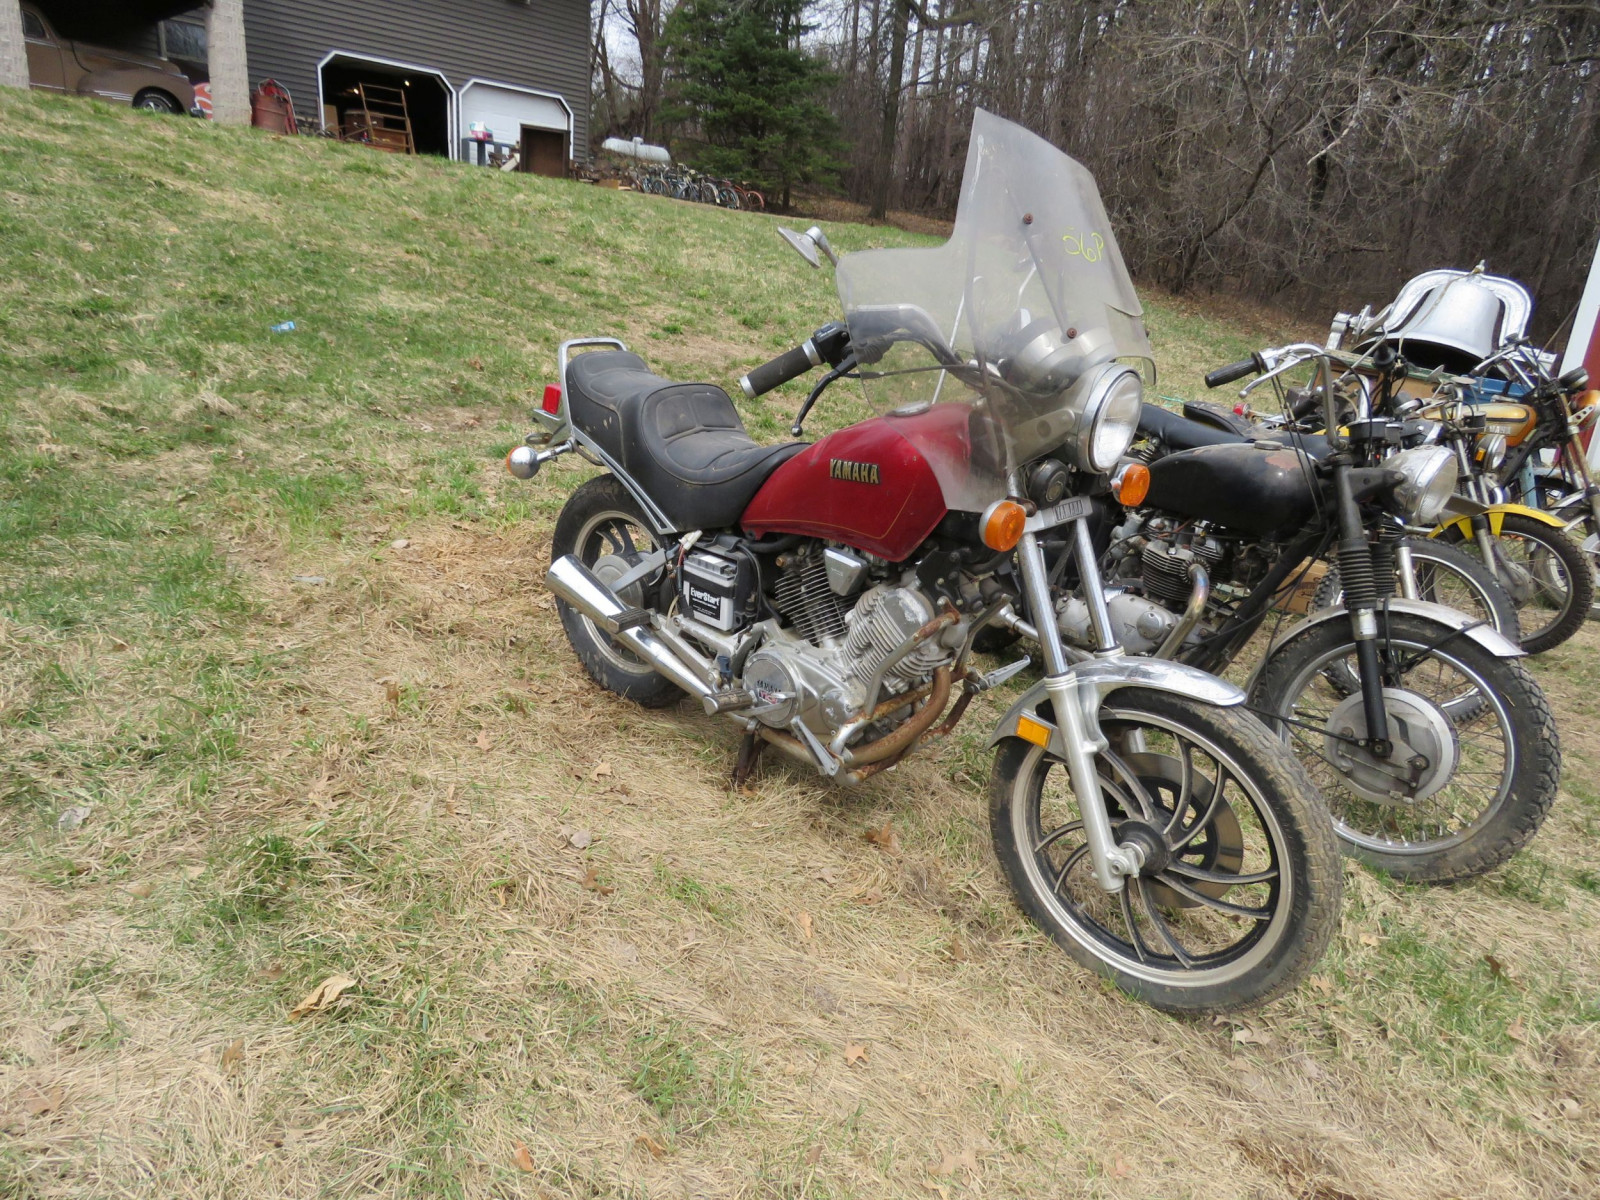 1982 Yamaha Motorcycle for Project or parts - Image 1